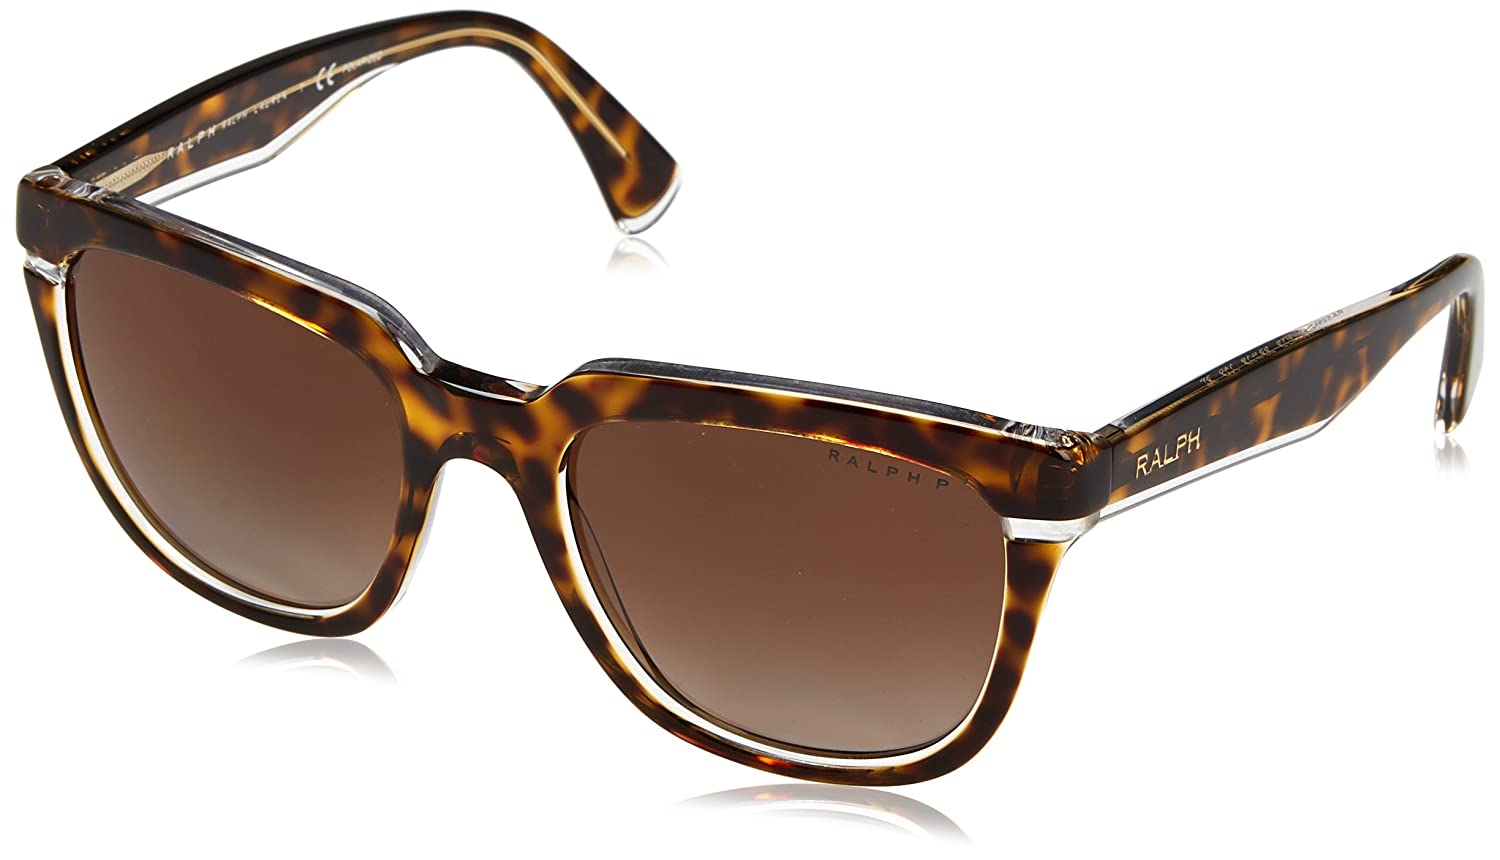 994f0a0286 Amazon.com  Ralph by Ralph Lauren Women s Plastic Woman Sunglass Square